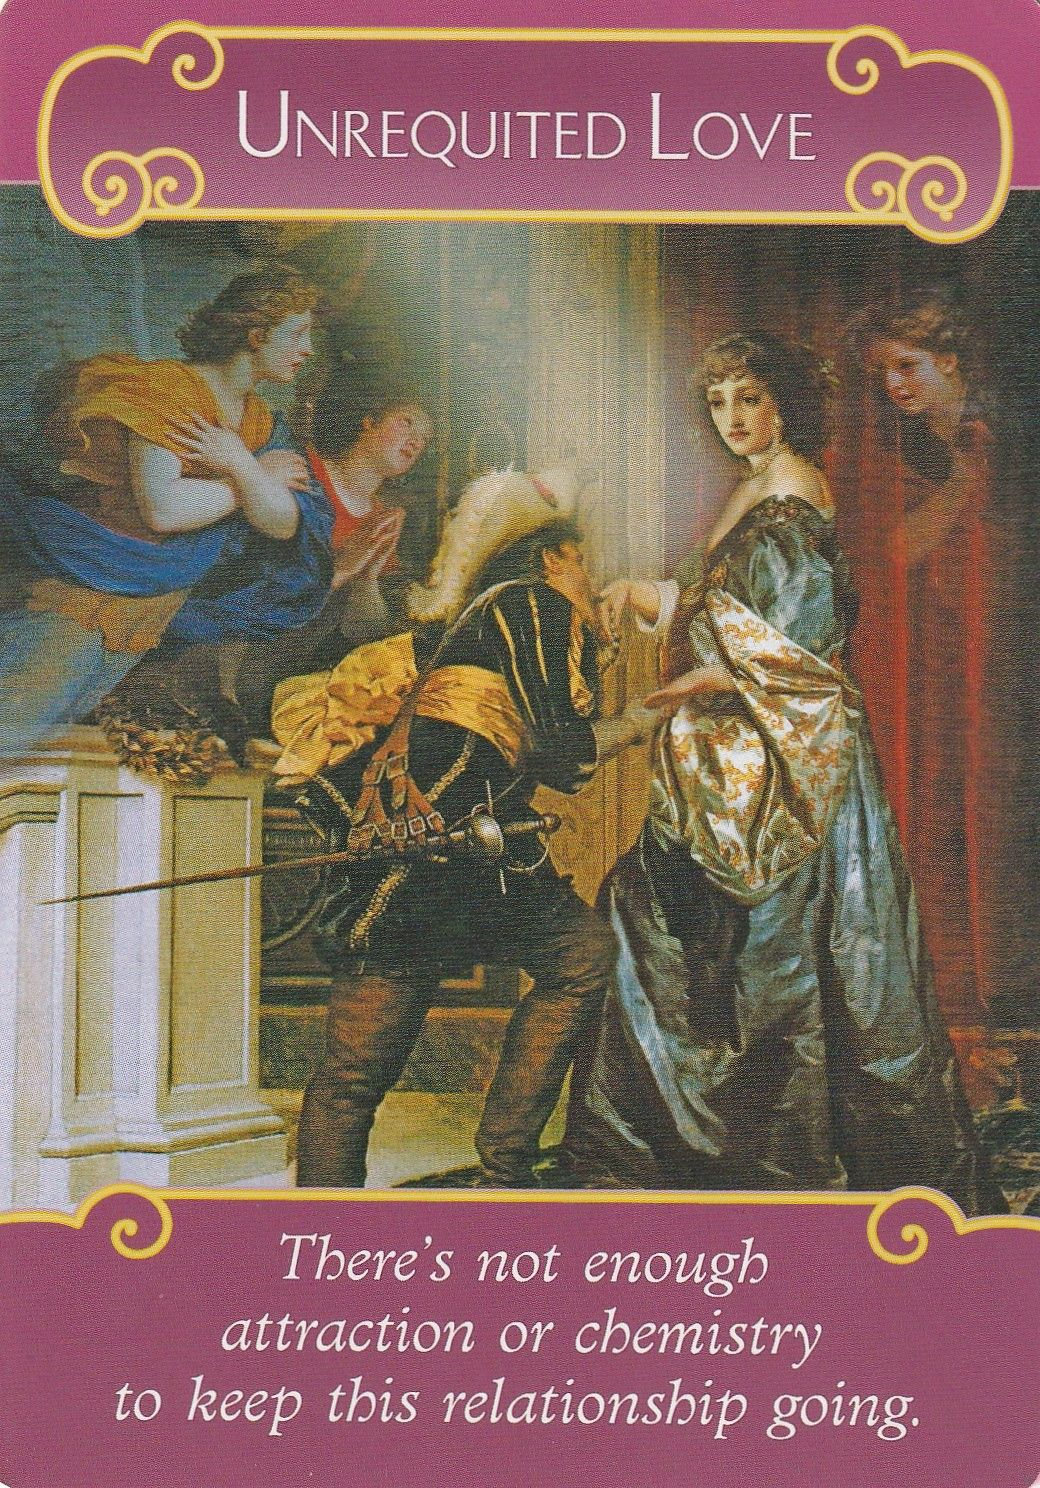 THE ROMANCE ANGELS ORACLE CARDS BY DOREEN VIRTUE